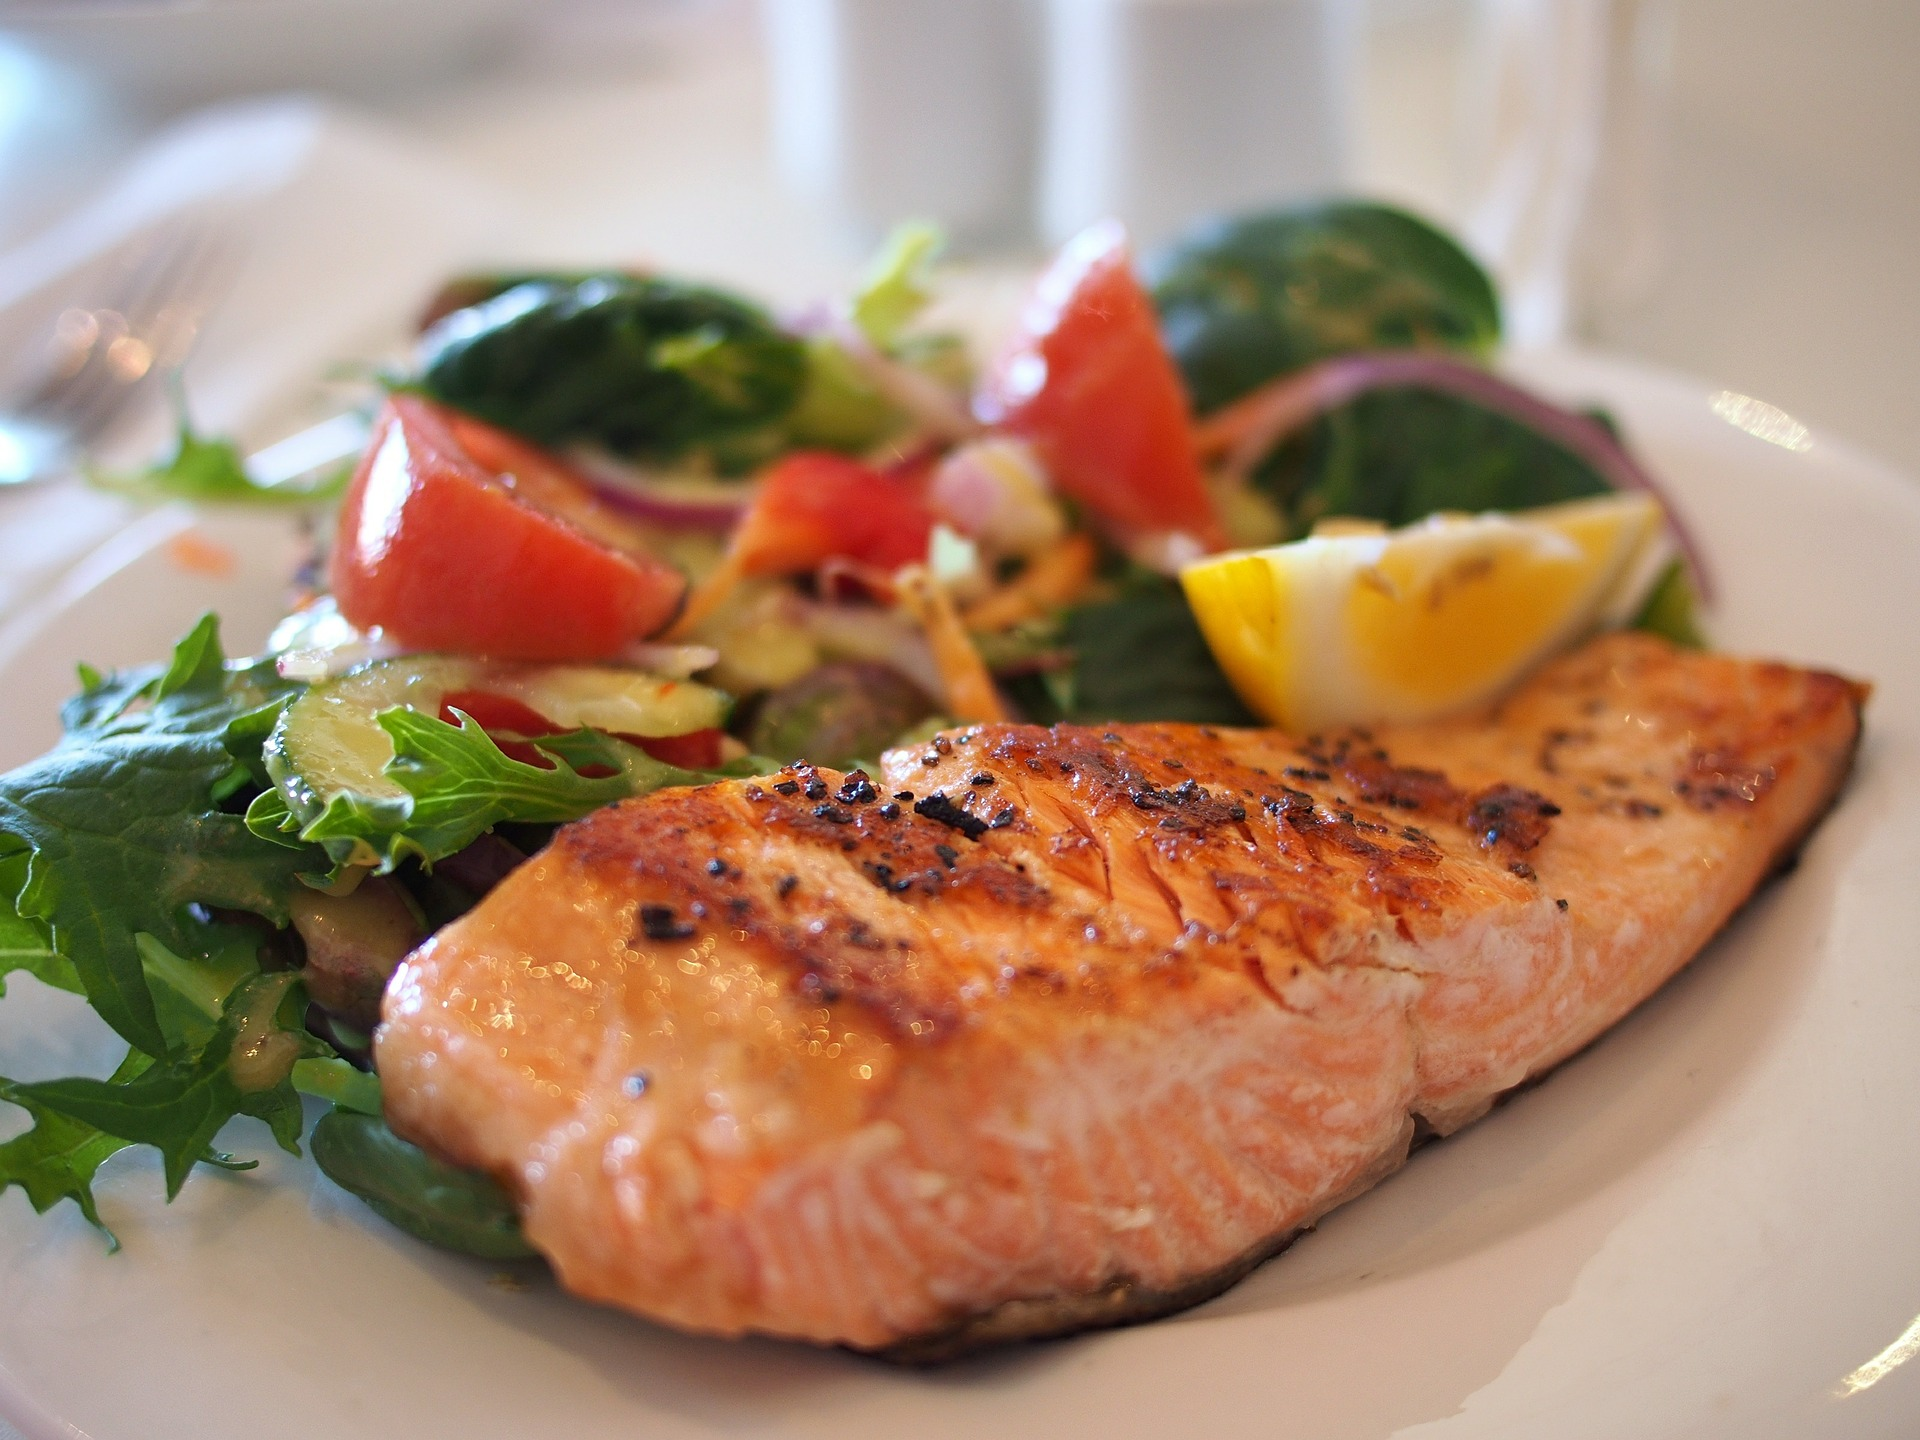 Salmon and salad: a low-carb, pescetarian, diabetes-friendly meal.